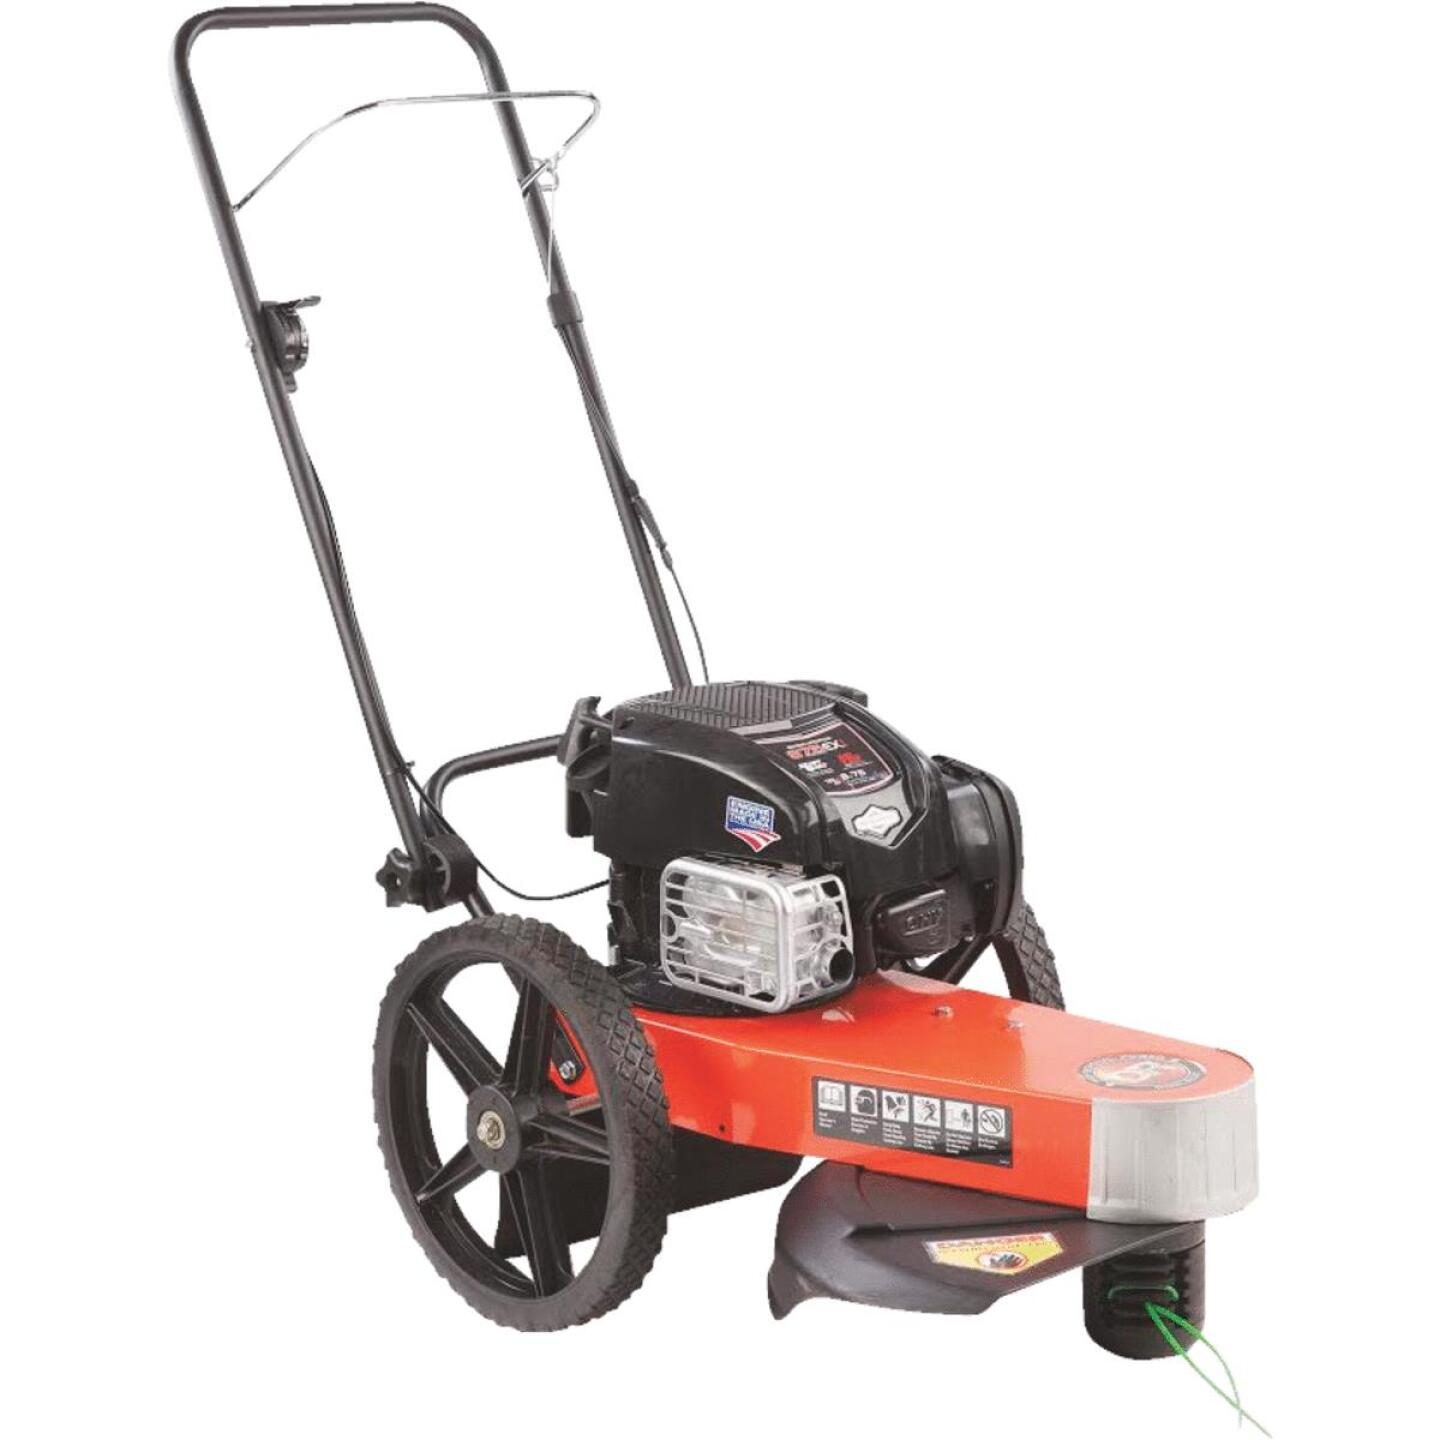 DR Power 22 In. 163 CC Walk Behind Gas Trimmer Mower Image 1